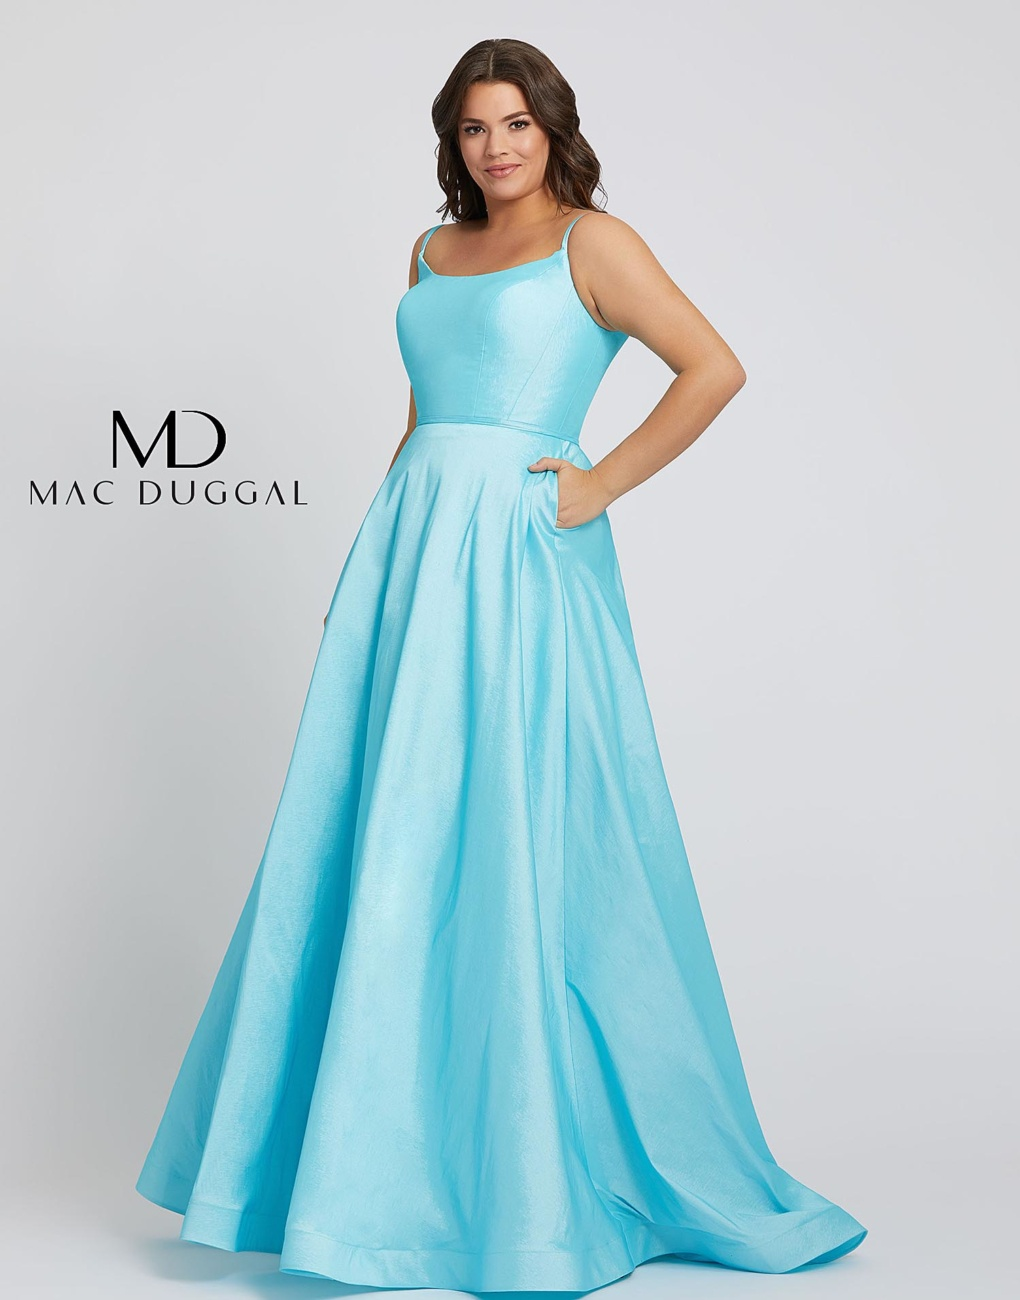 Style 67219F Mac Duggal Blue Size 24 Train Tall Height A-line Dress on Queenly